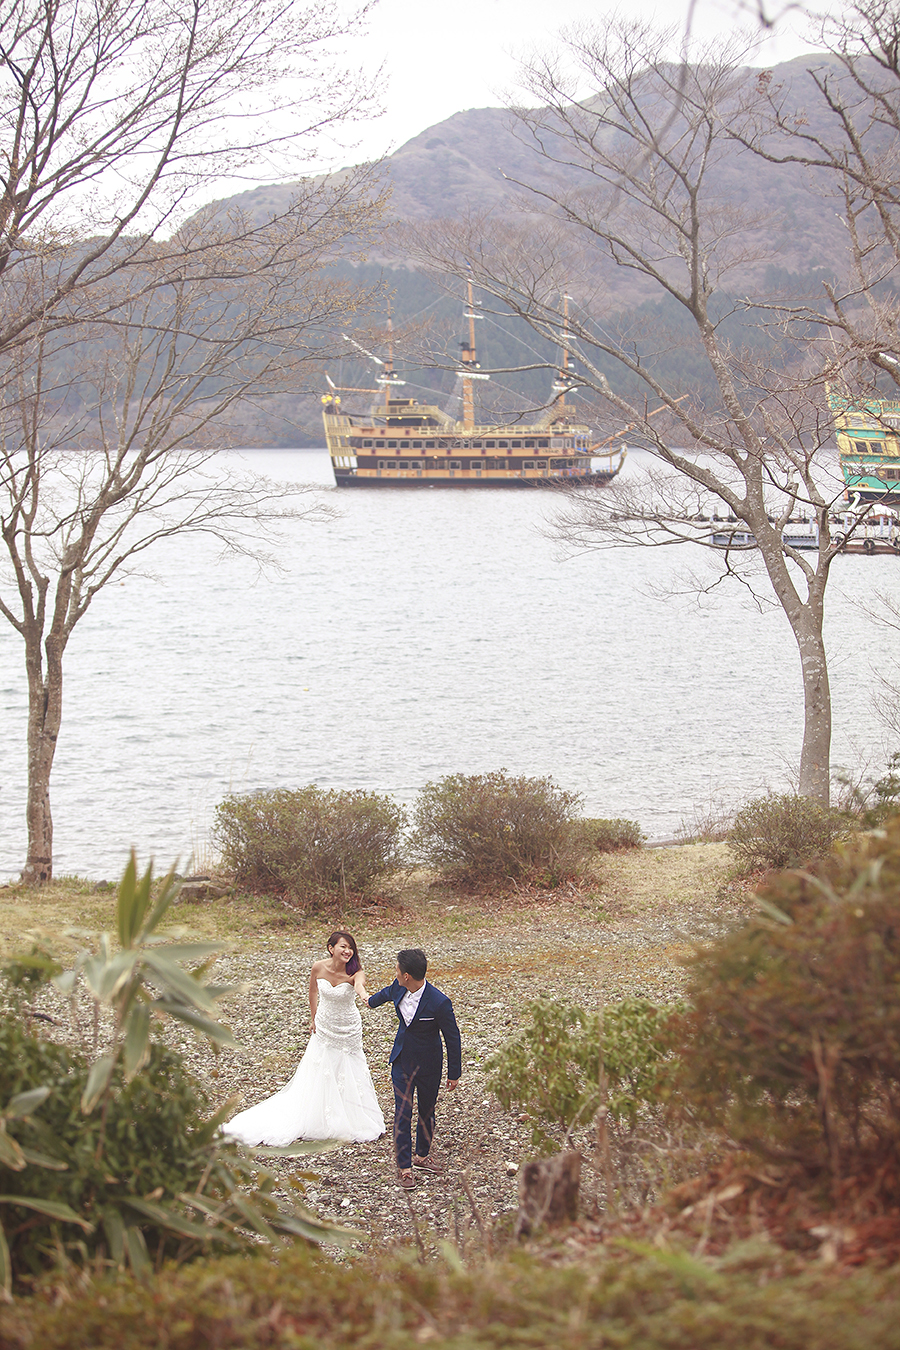 tokyo hakone japan spring sakura . engagement wedding photography by kurt ahs . ns + eu . 0383.jpg